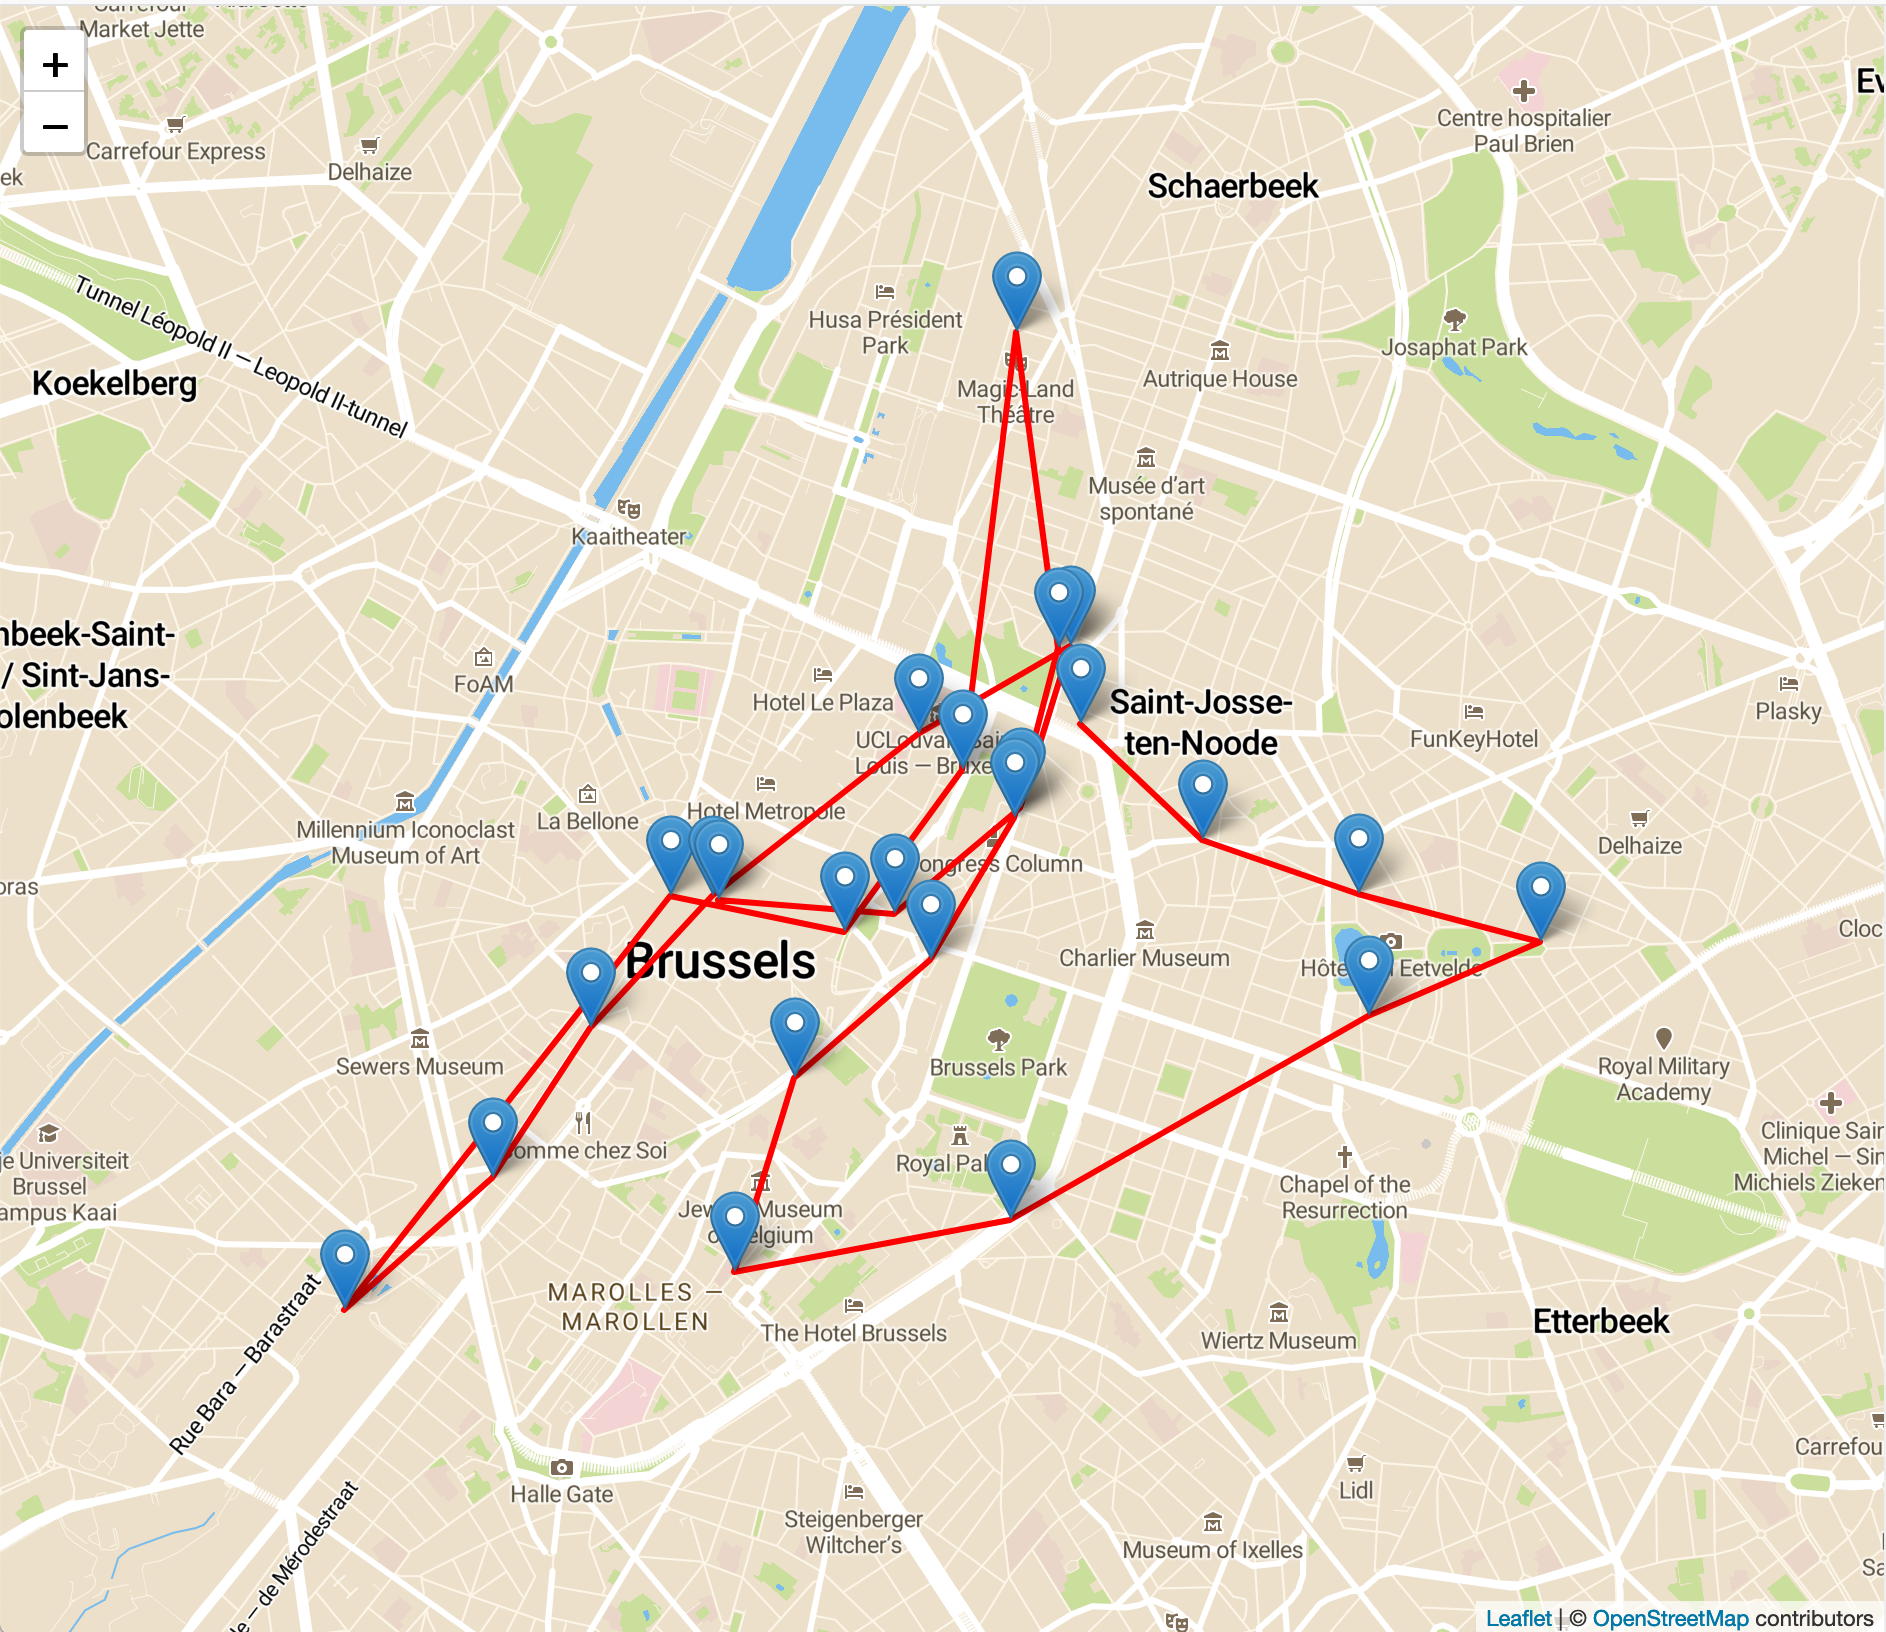 A map of Brussels with some location markers